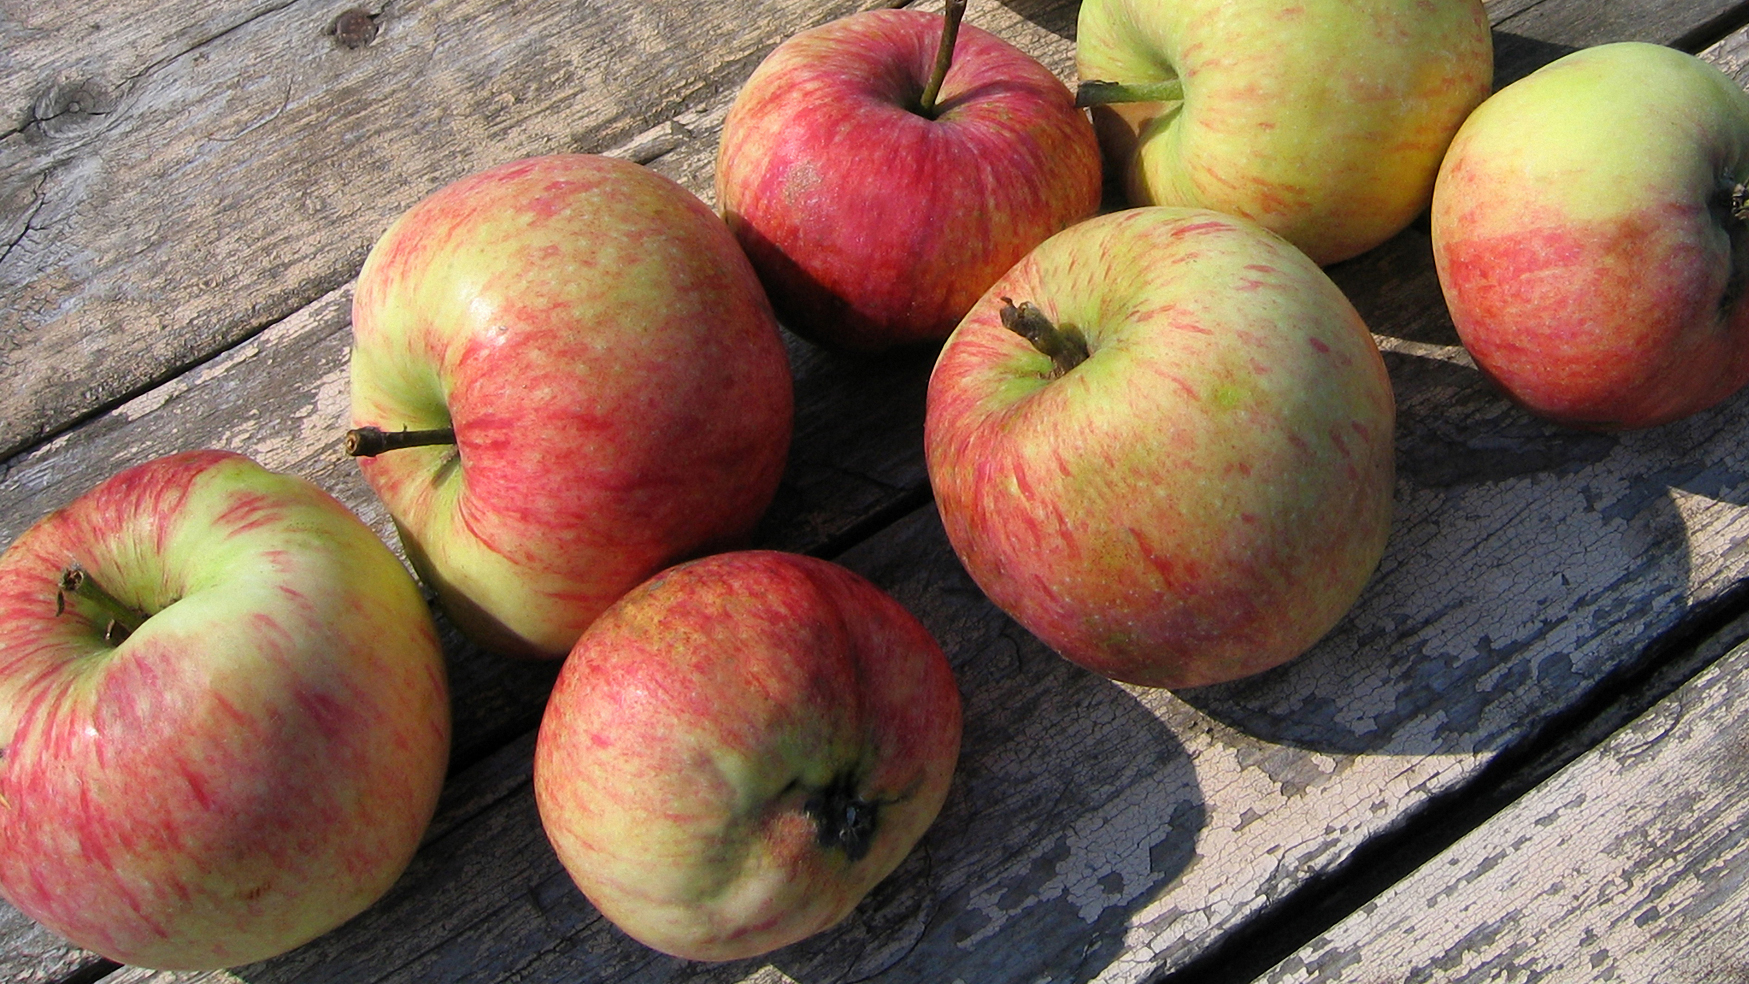 Fall means crisp apples in New England